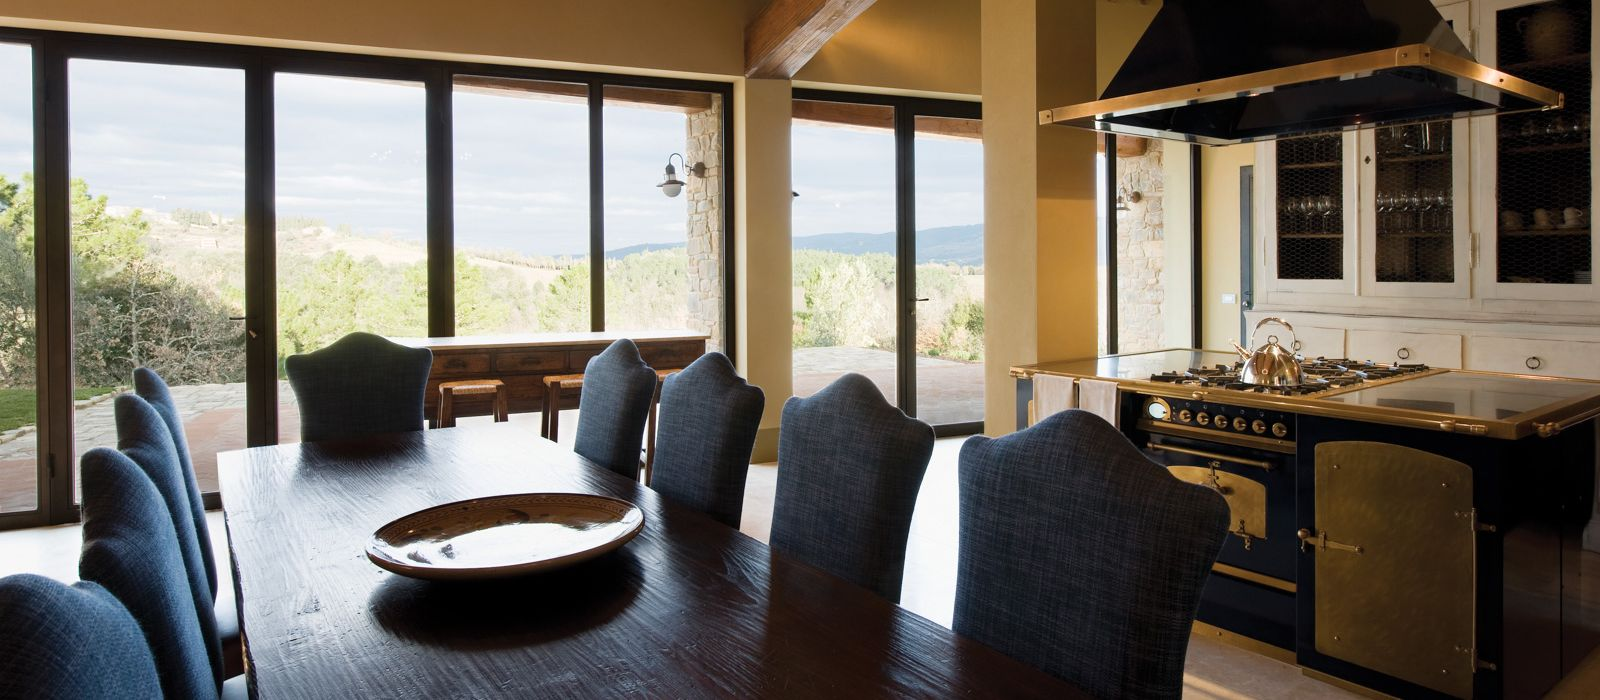 Poggio alla Corona Dining Room and Kitchen